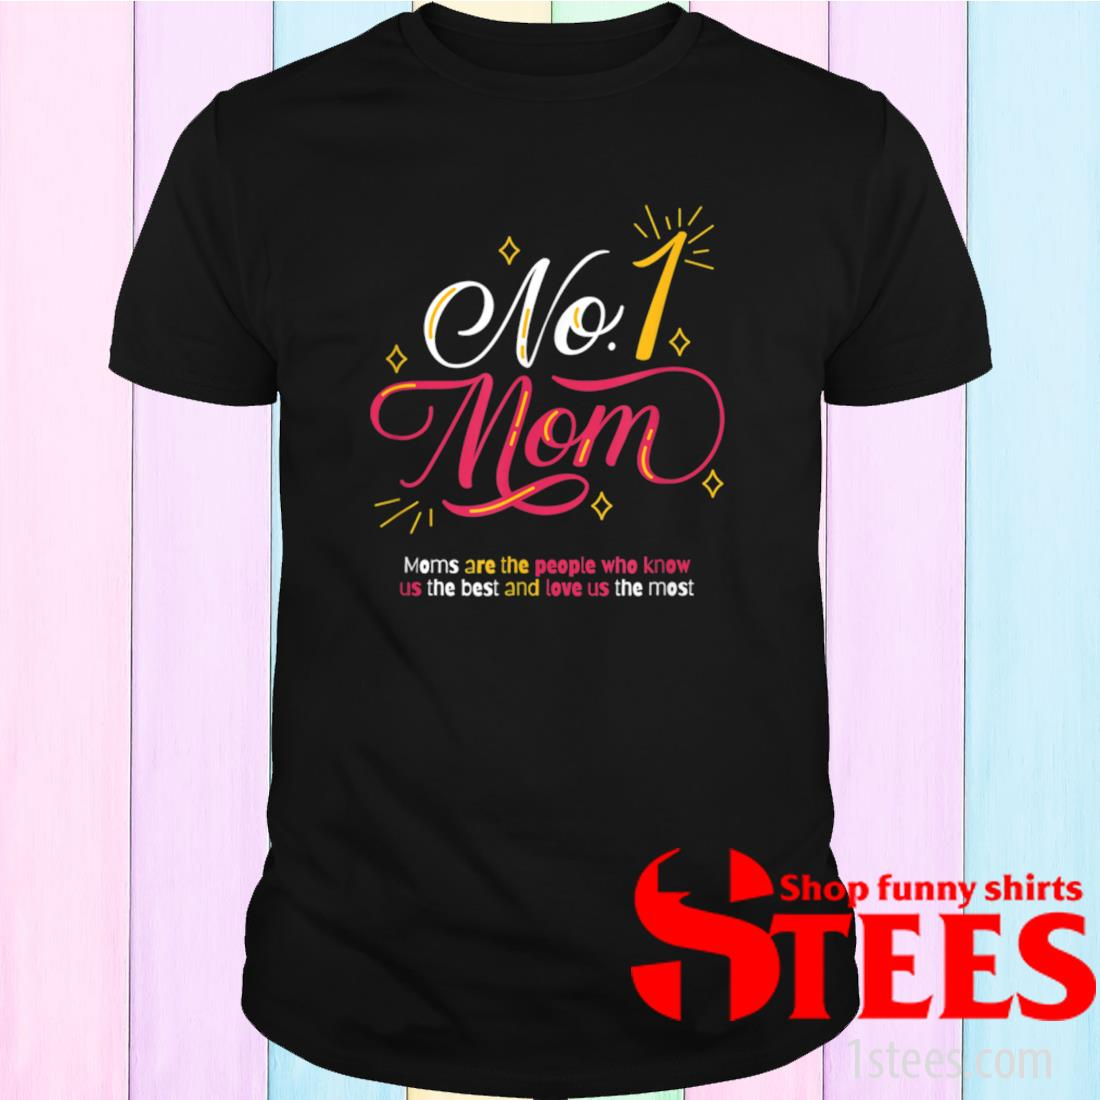 #1 Mom, Mom's Knows Us Best And Love Us Most Shirt